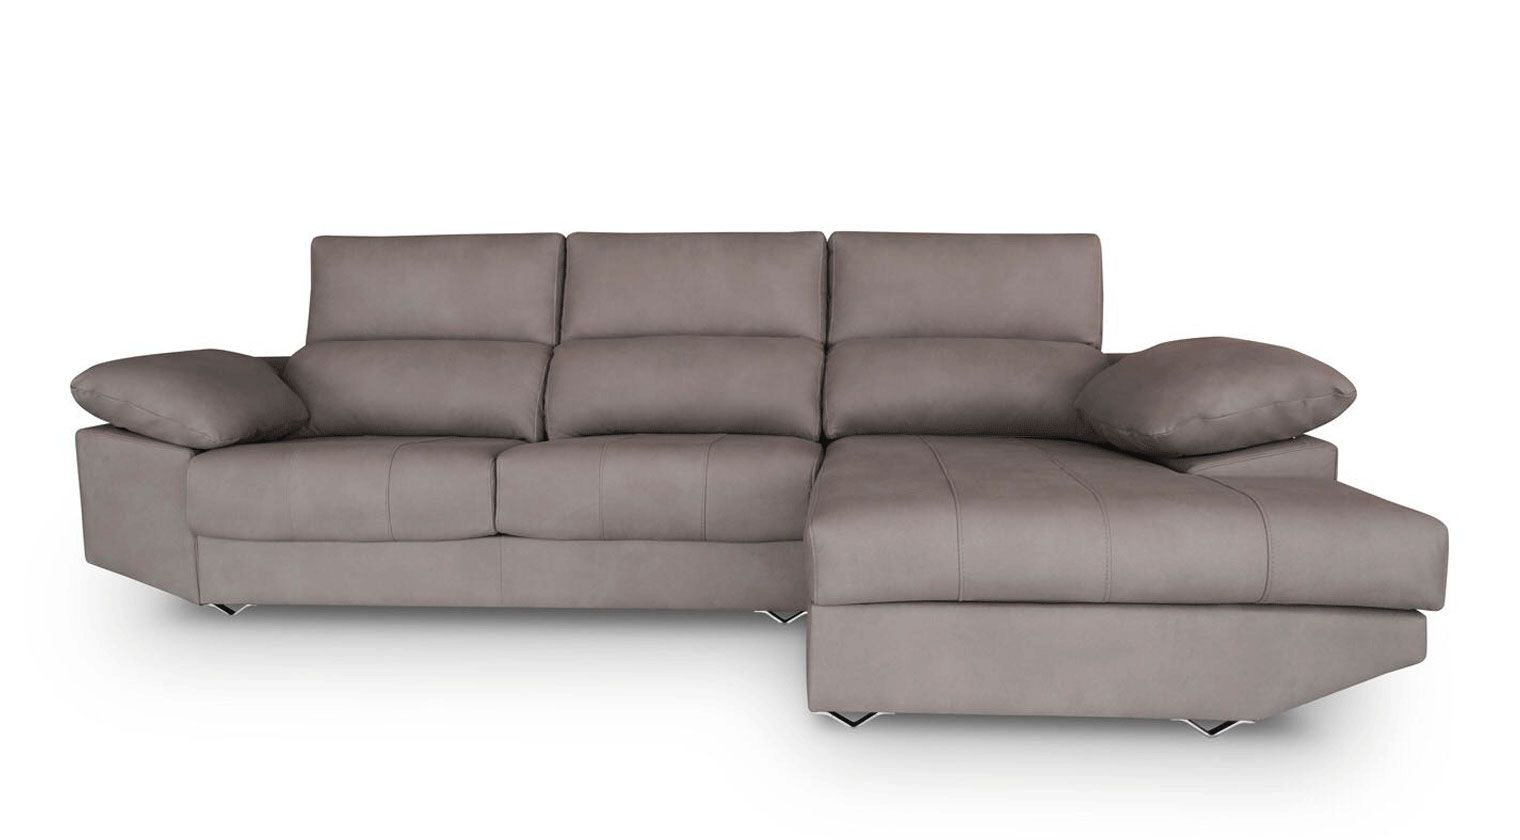 Comprar sof tela invictus chaise longue 4 plazas for Sofas baratos asturias